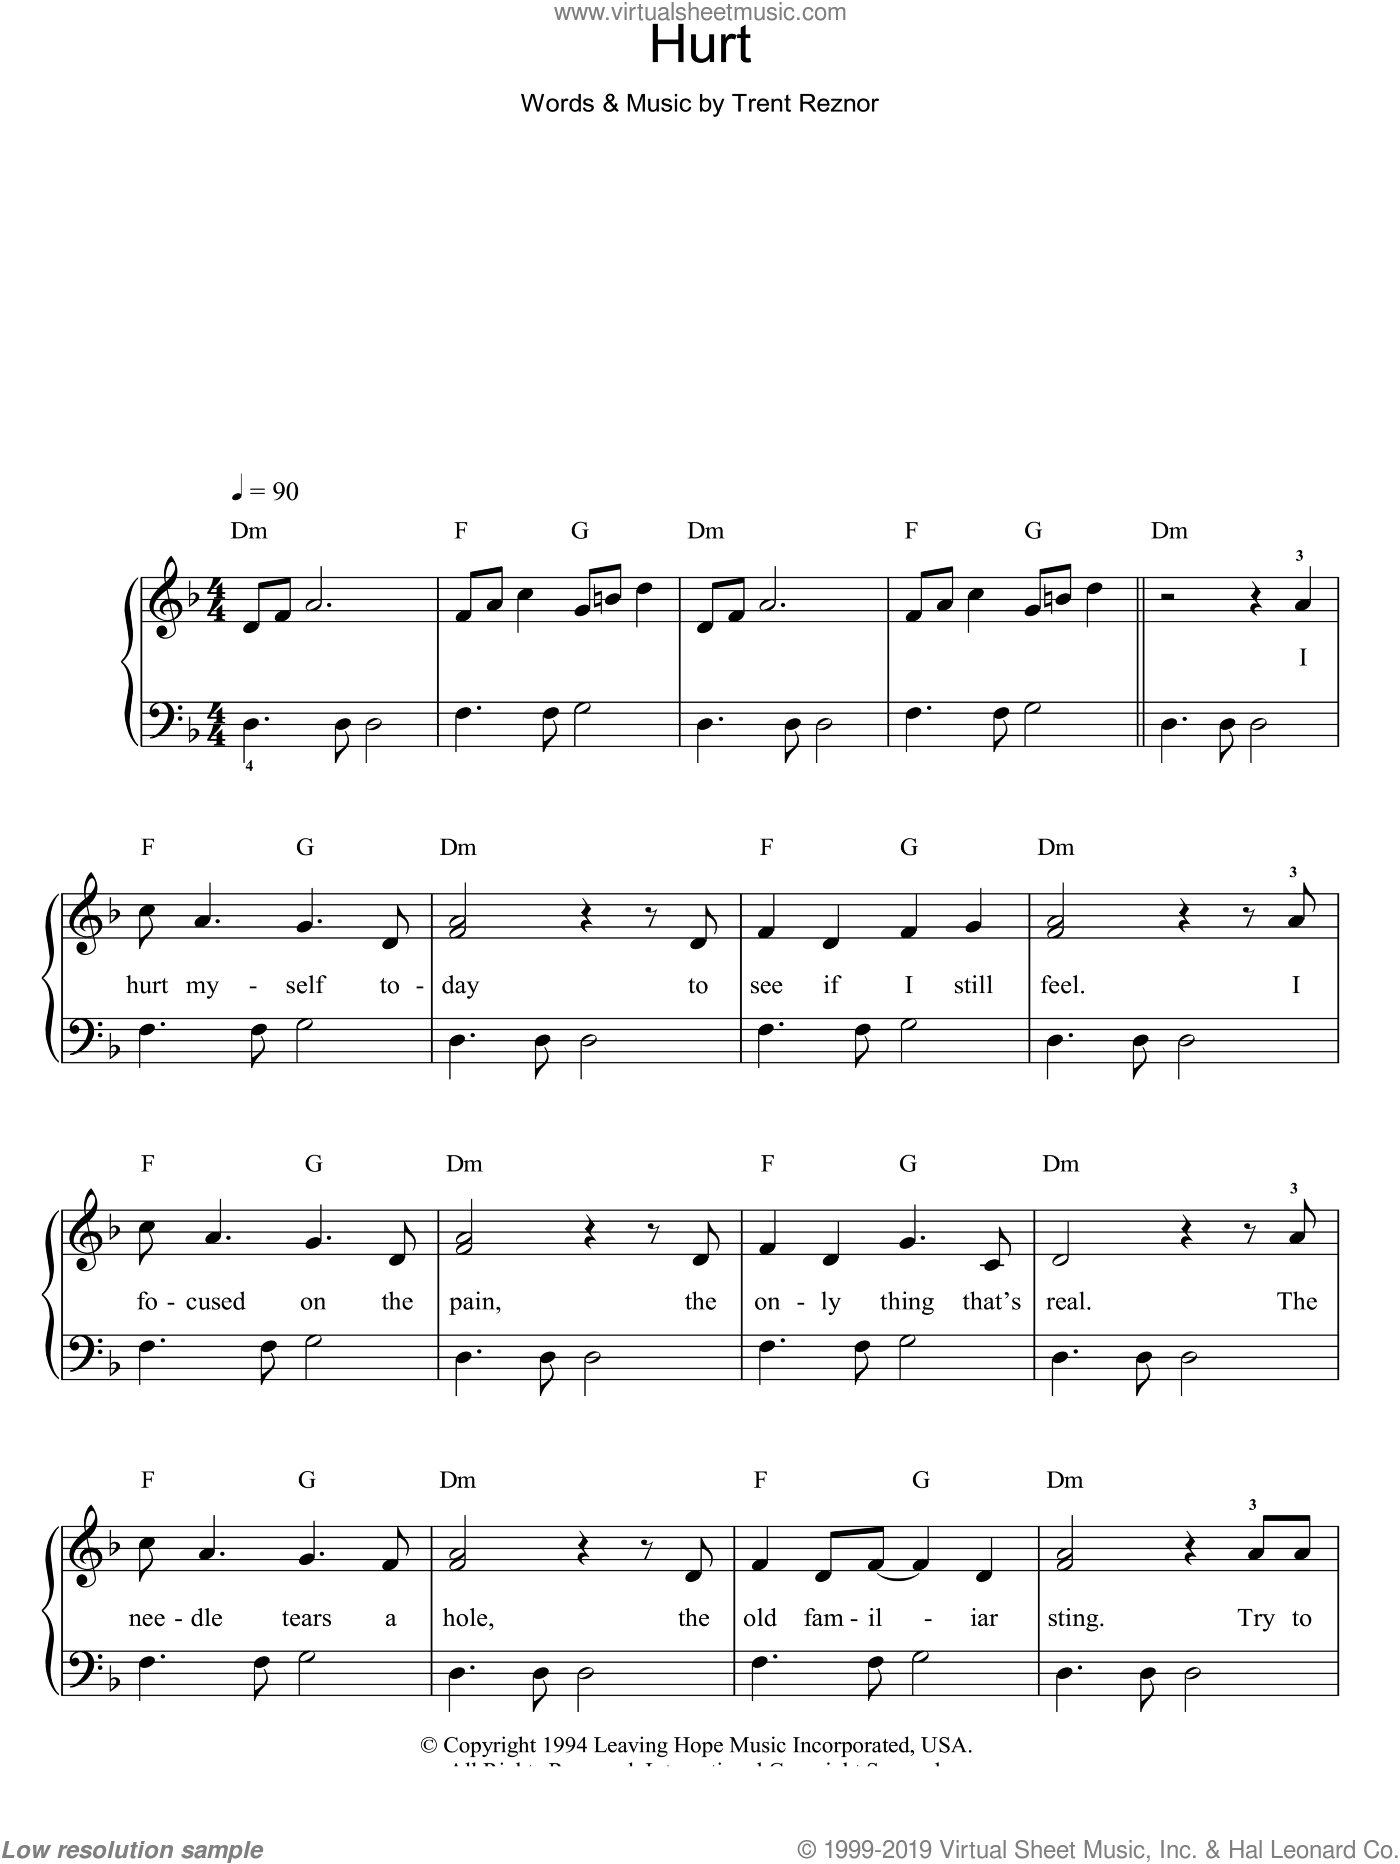 Hurt sheet music for piano solo by Johnny Cash and Trent Reznor, easy skill level